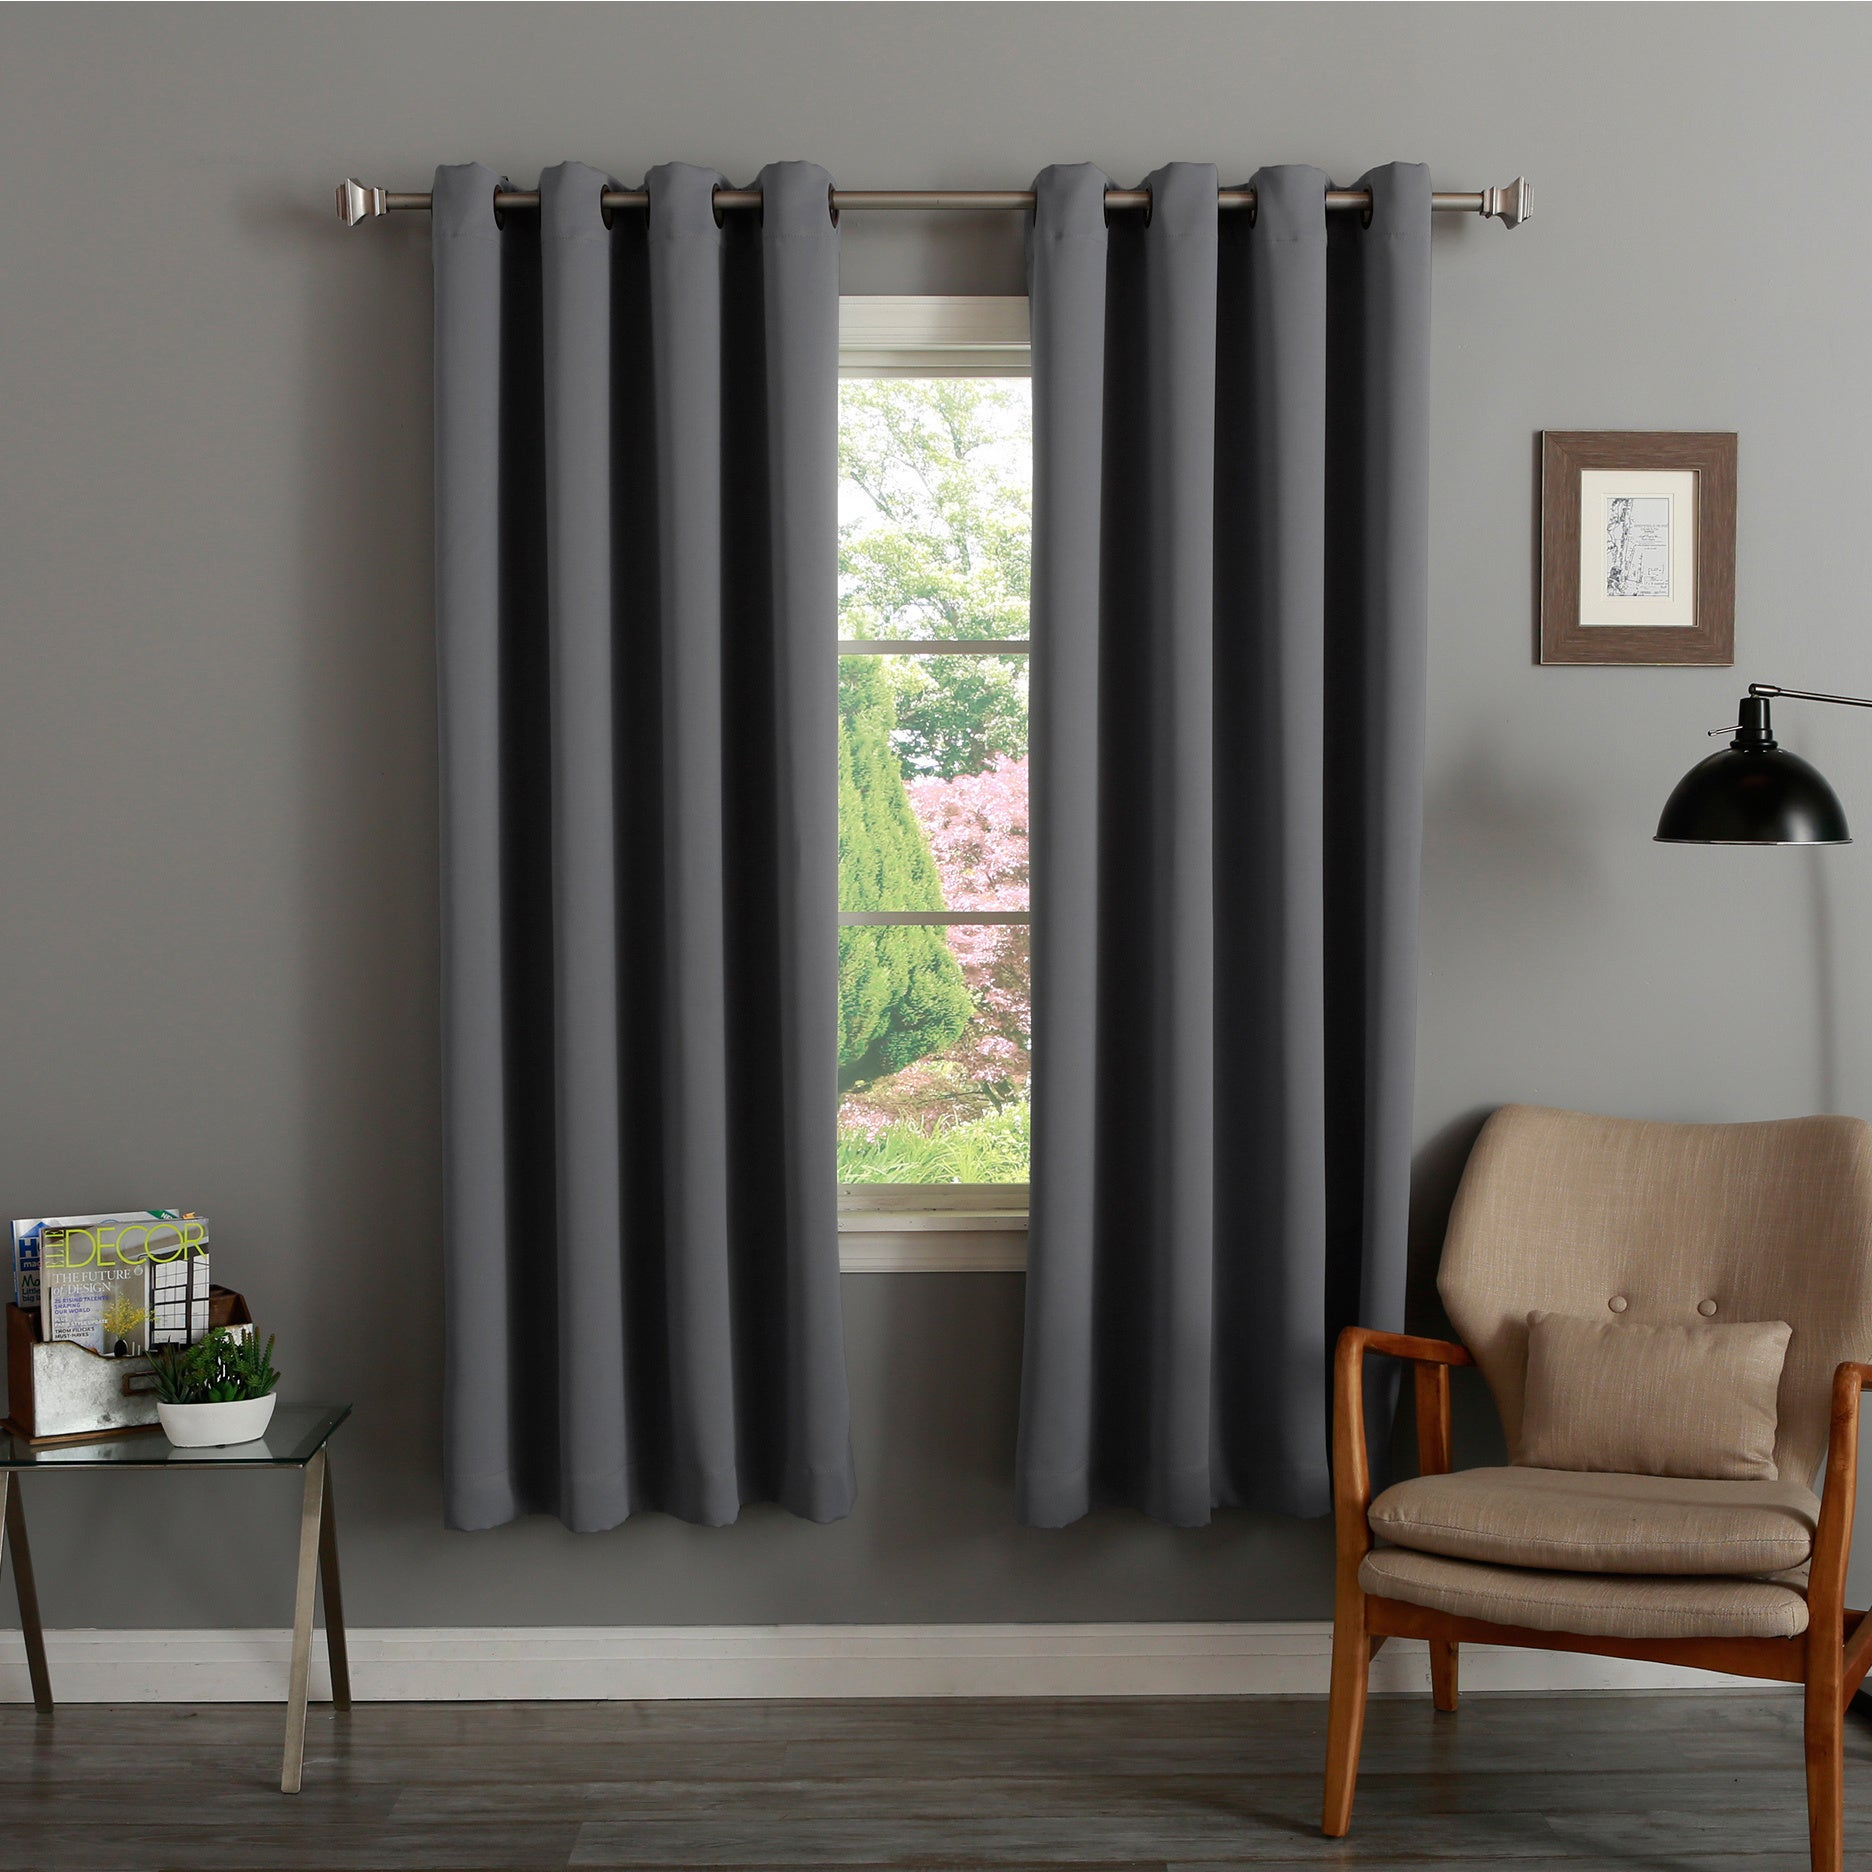 Aurora Home Thermal Insulated 72 Inch Blackout Curtain